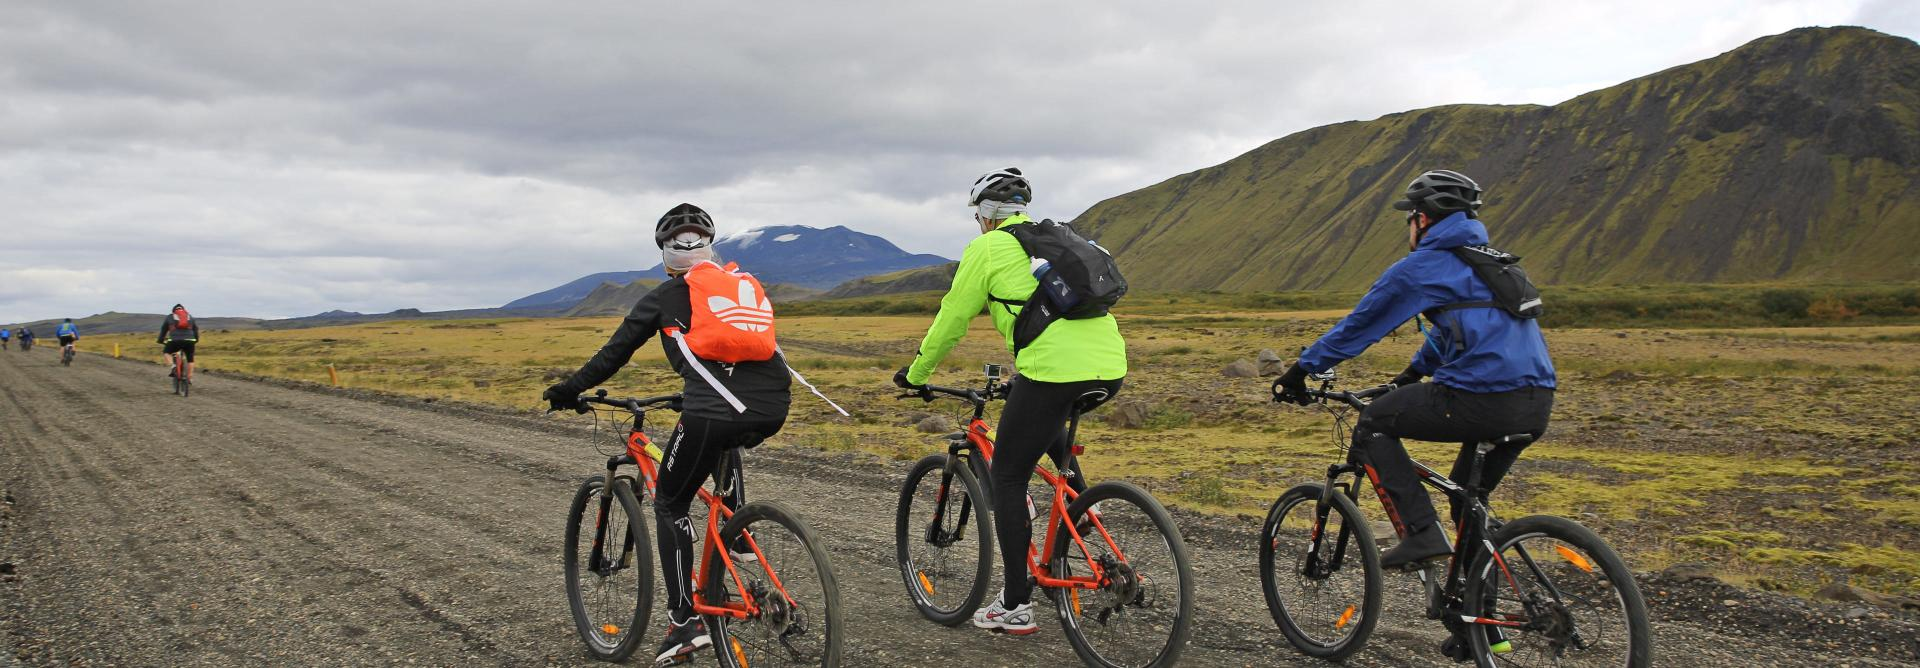 Fire and Ice Charity Bike Ride in Iceland